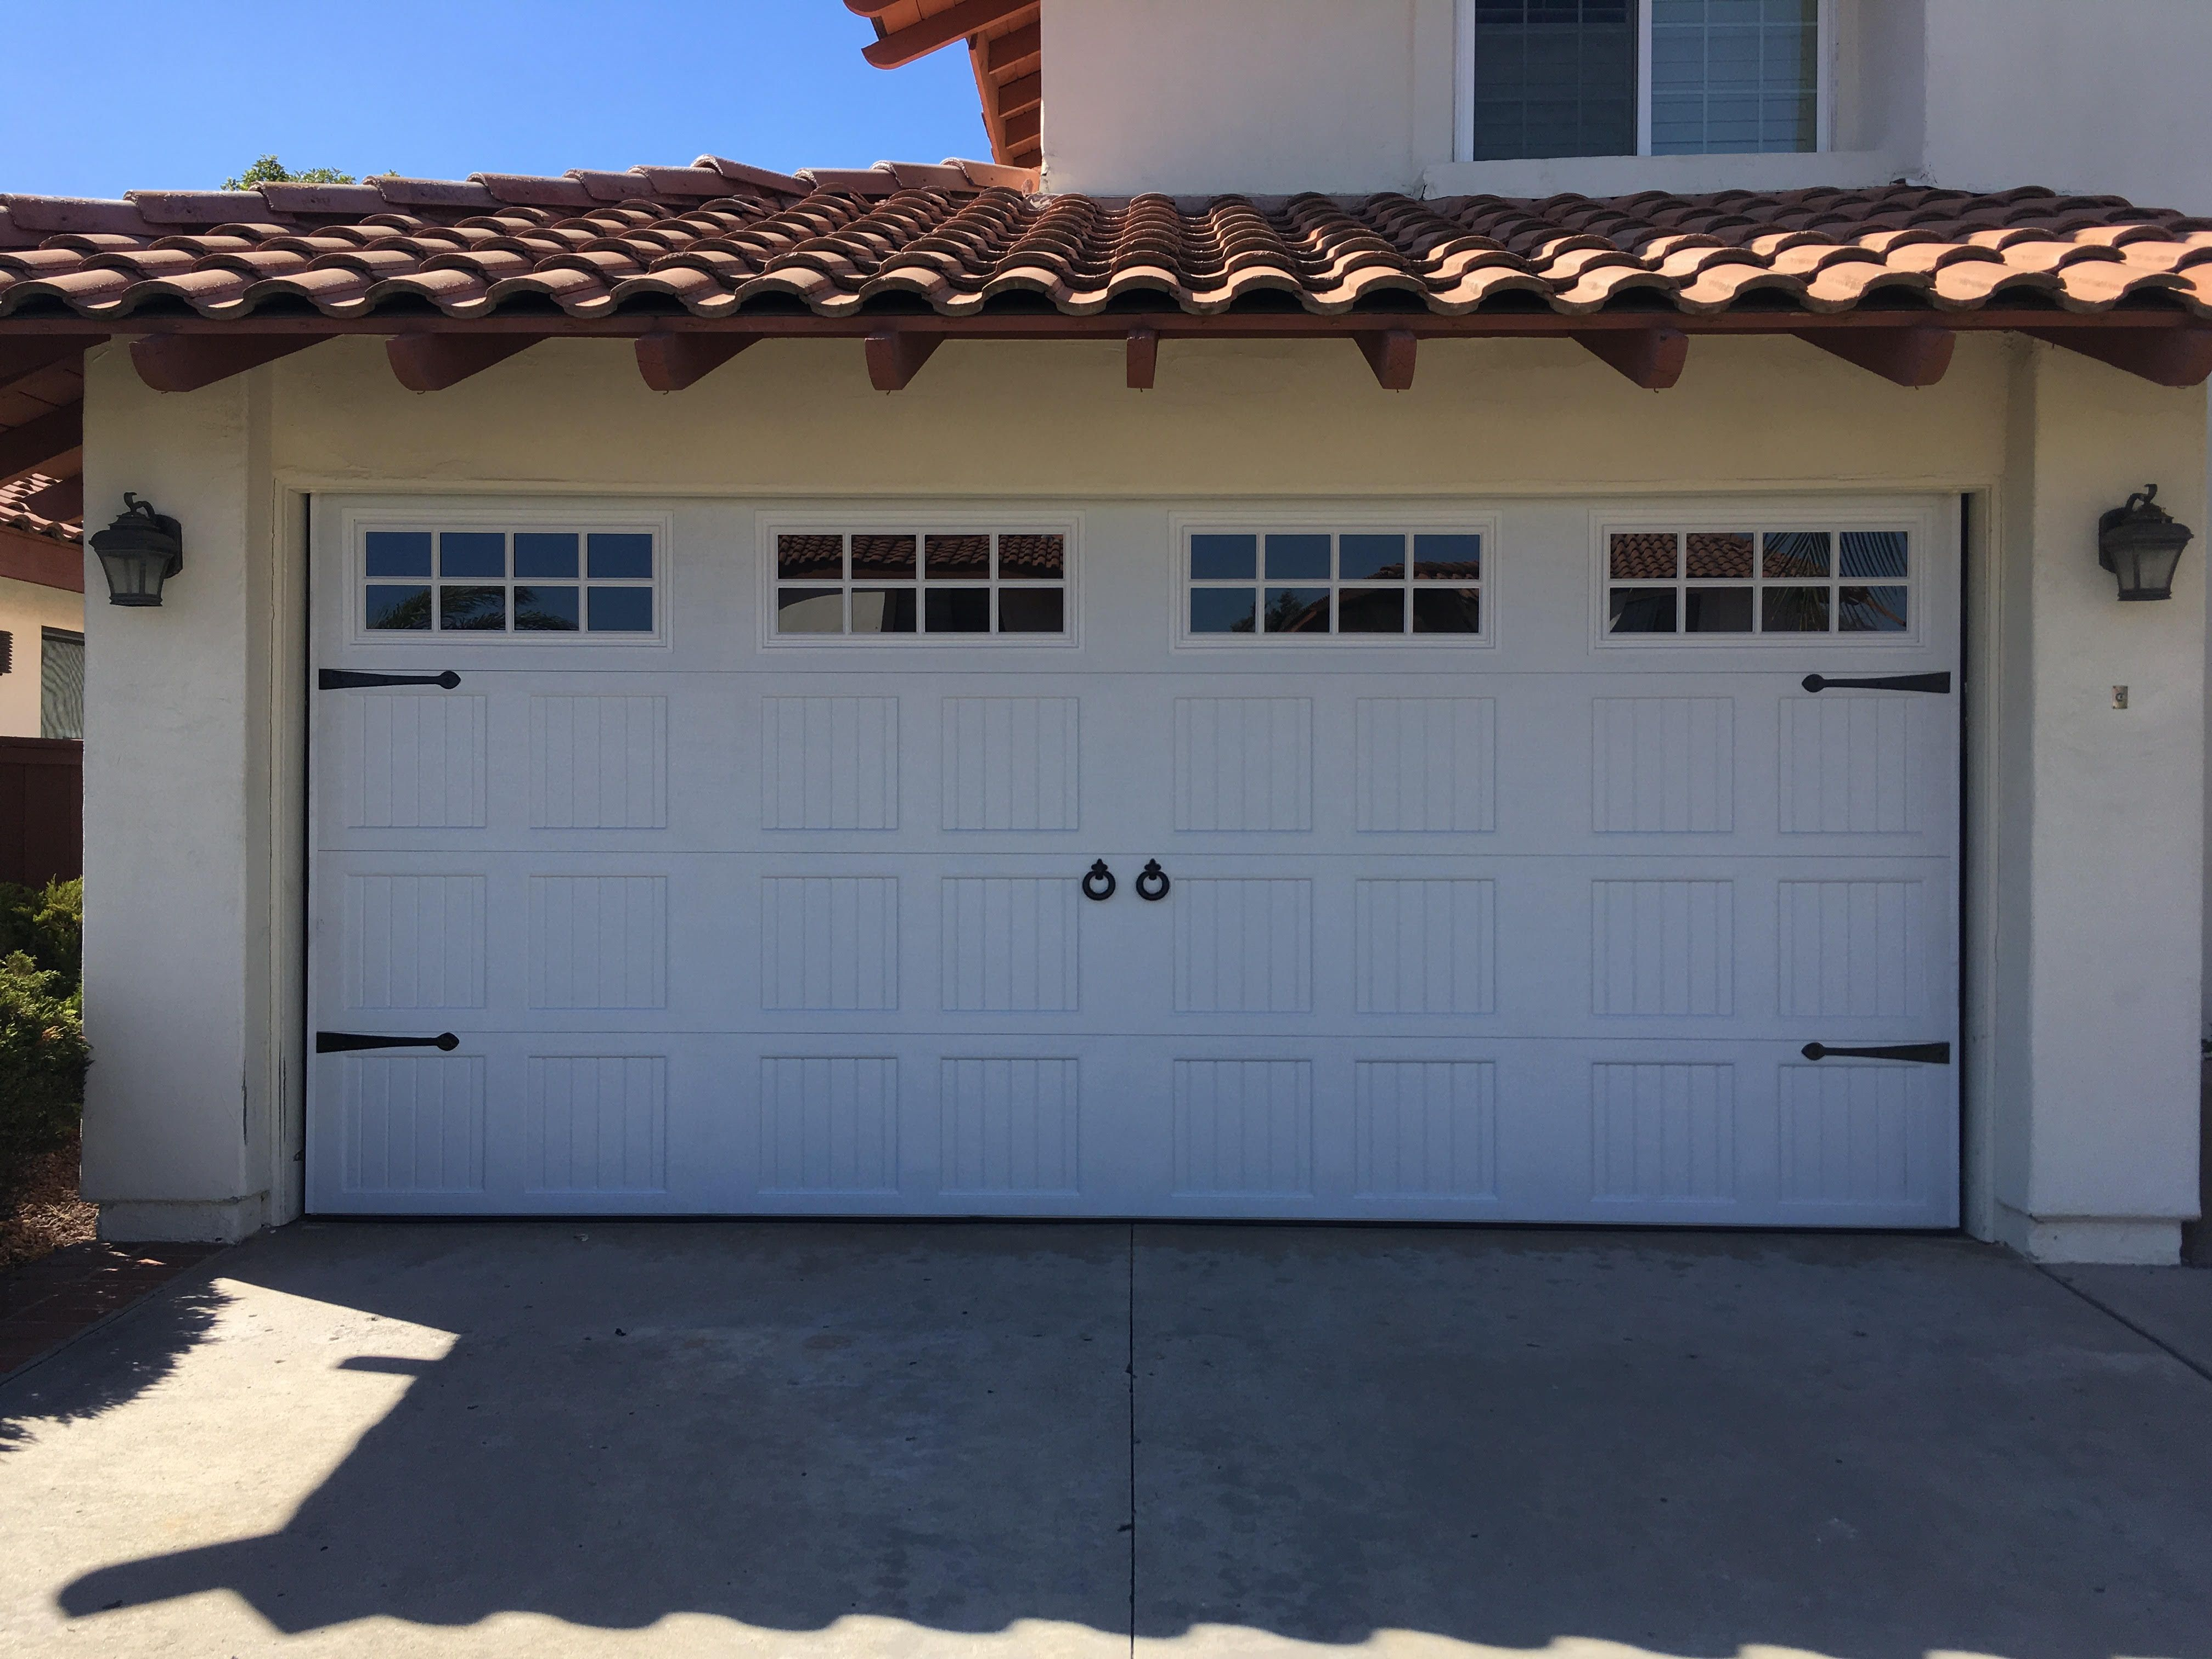 Gorgeous Carriage Style Garage Door Installed In Beautiful San Diego Ca If You Need A New Garage D Carriage Style Garage Doors Door Installation Garage Doors